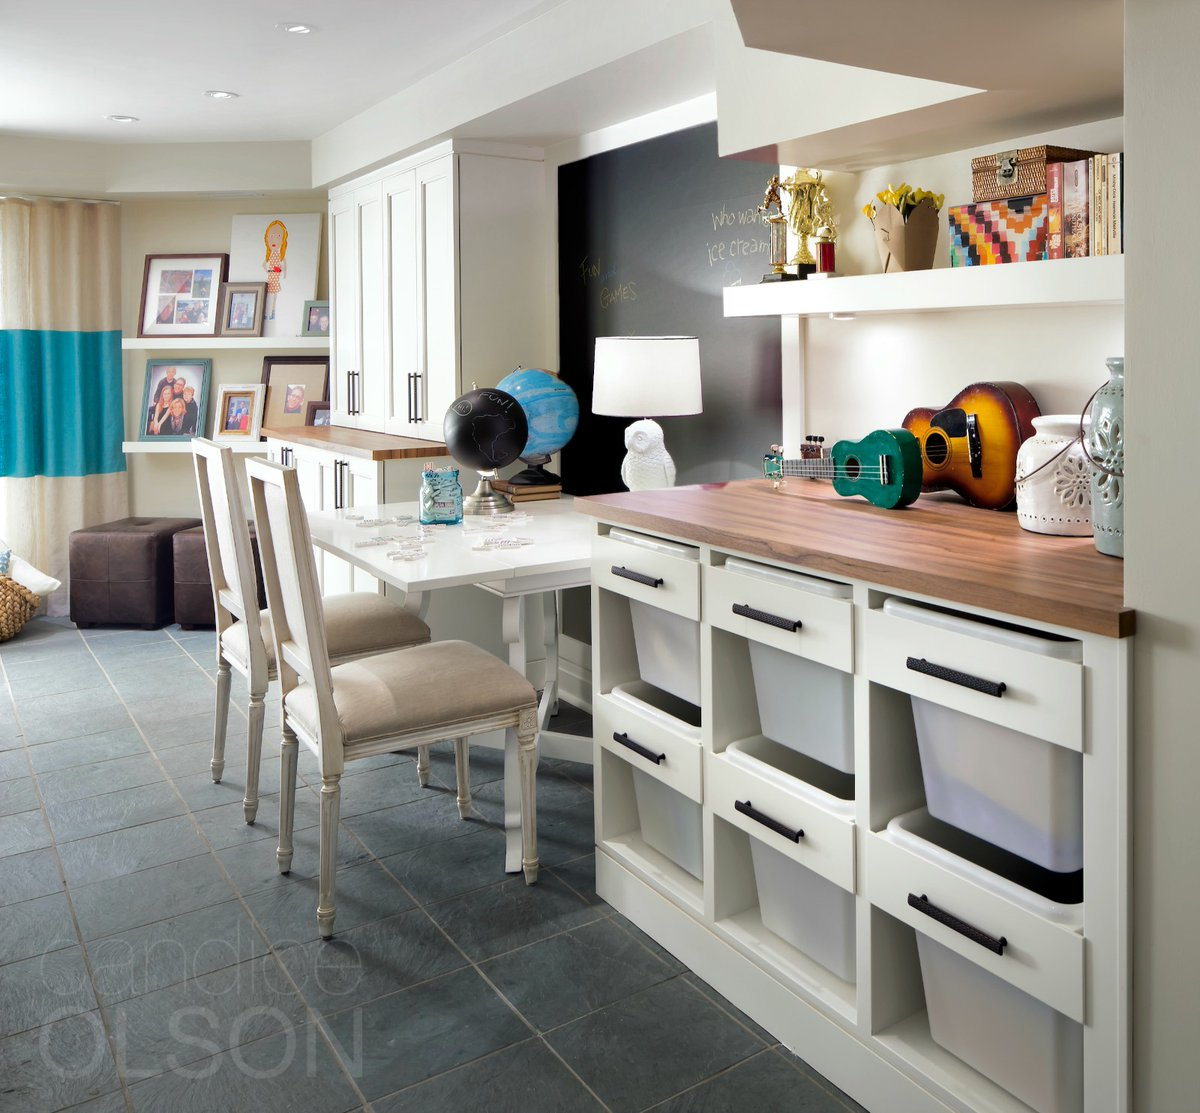 Candice Olson On Twitter The Kitchen May Be The Heart Of The Home But The Home Office Is Often The Catch All For Me Organizing Involves An Abundance Of Behind Closed Doors Storage Space Candiceolson